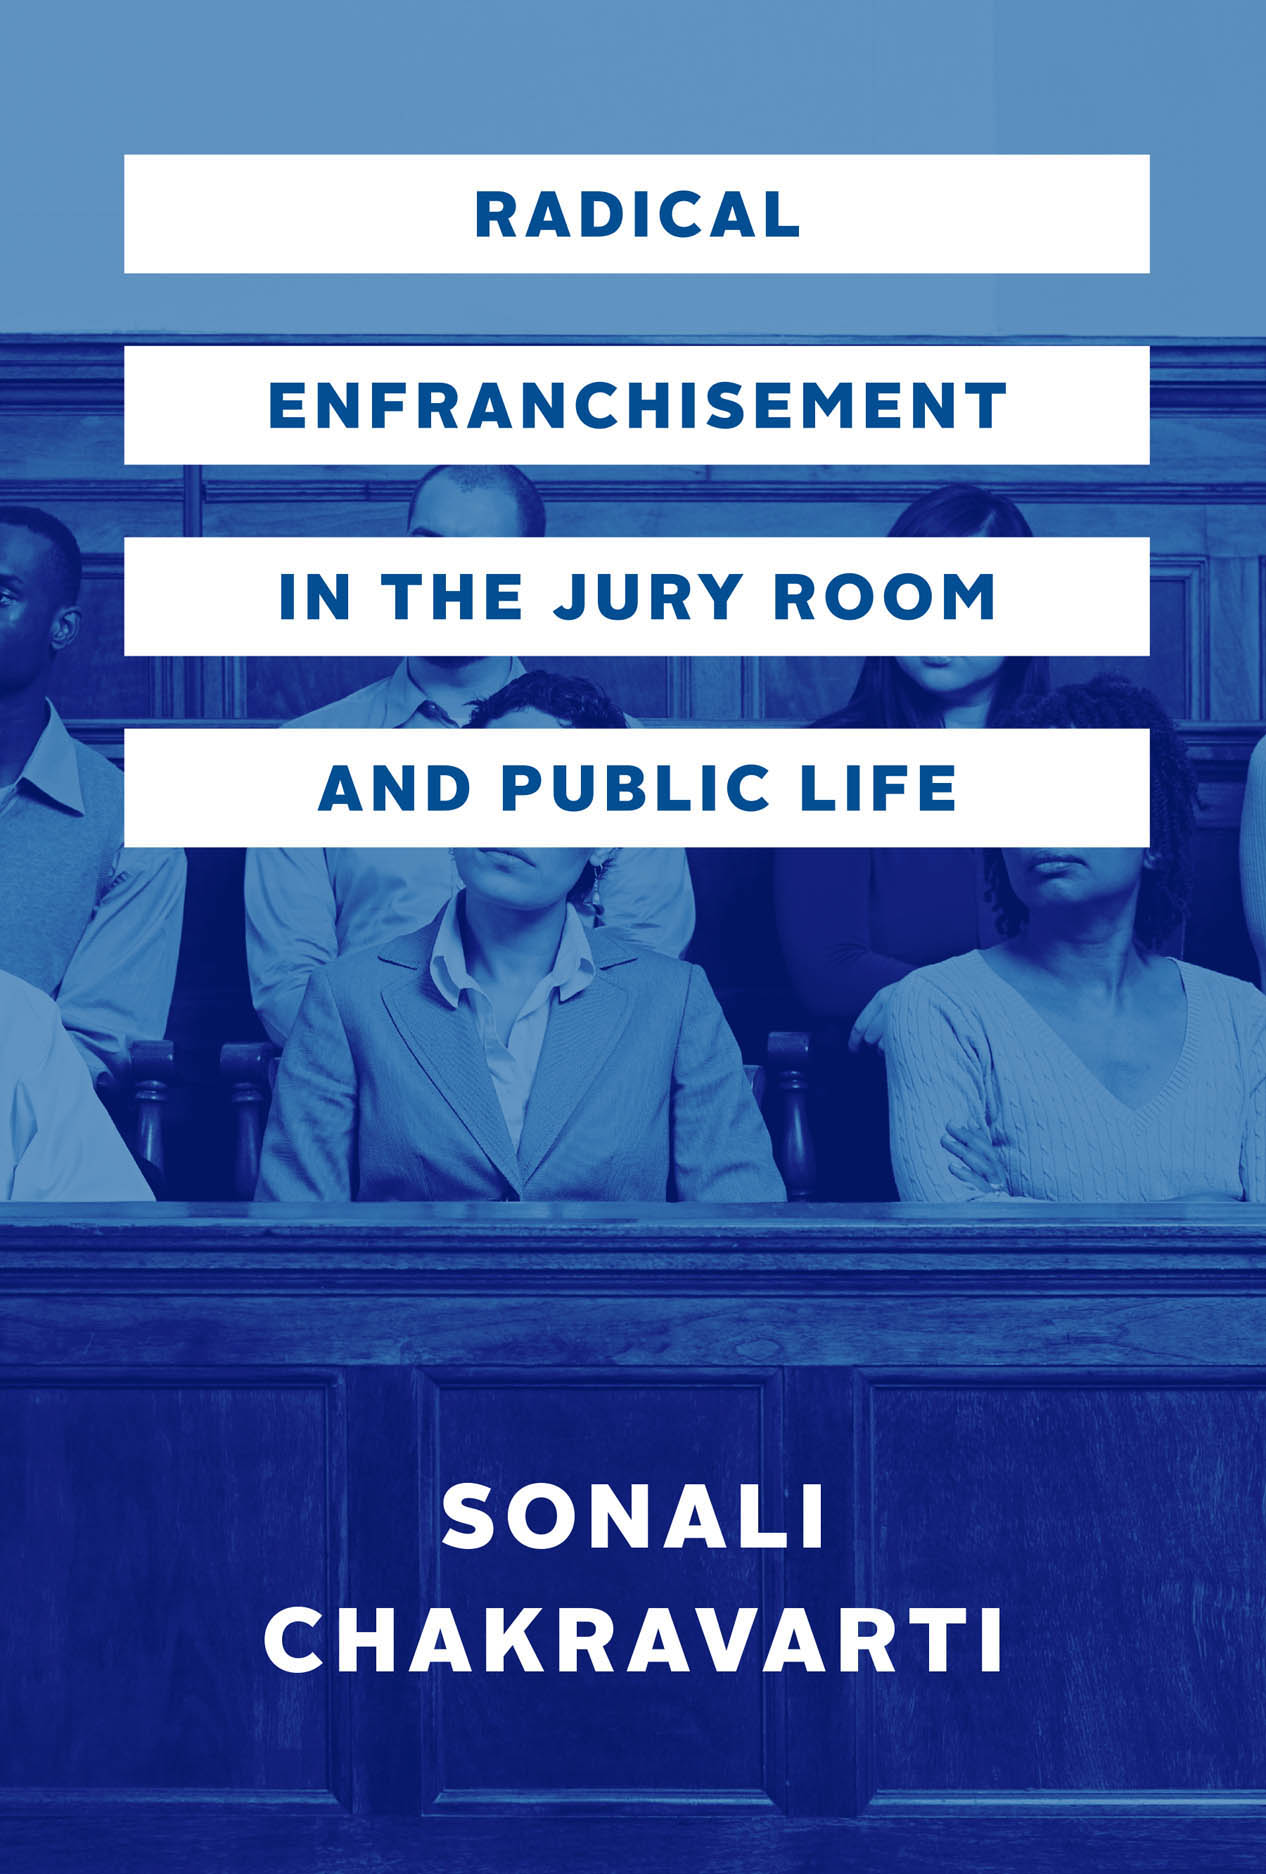 Radical Enfranchisement in the Jury Room and Public Life